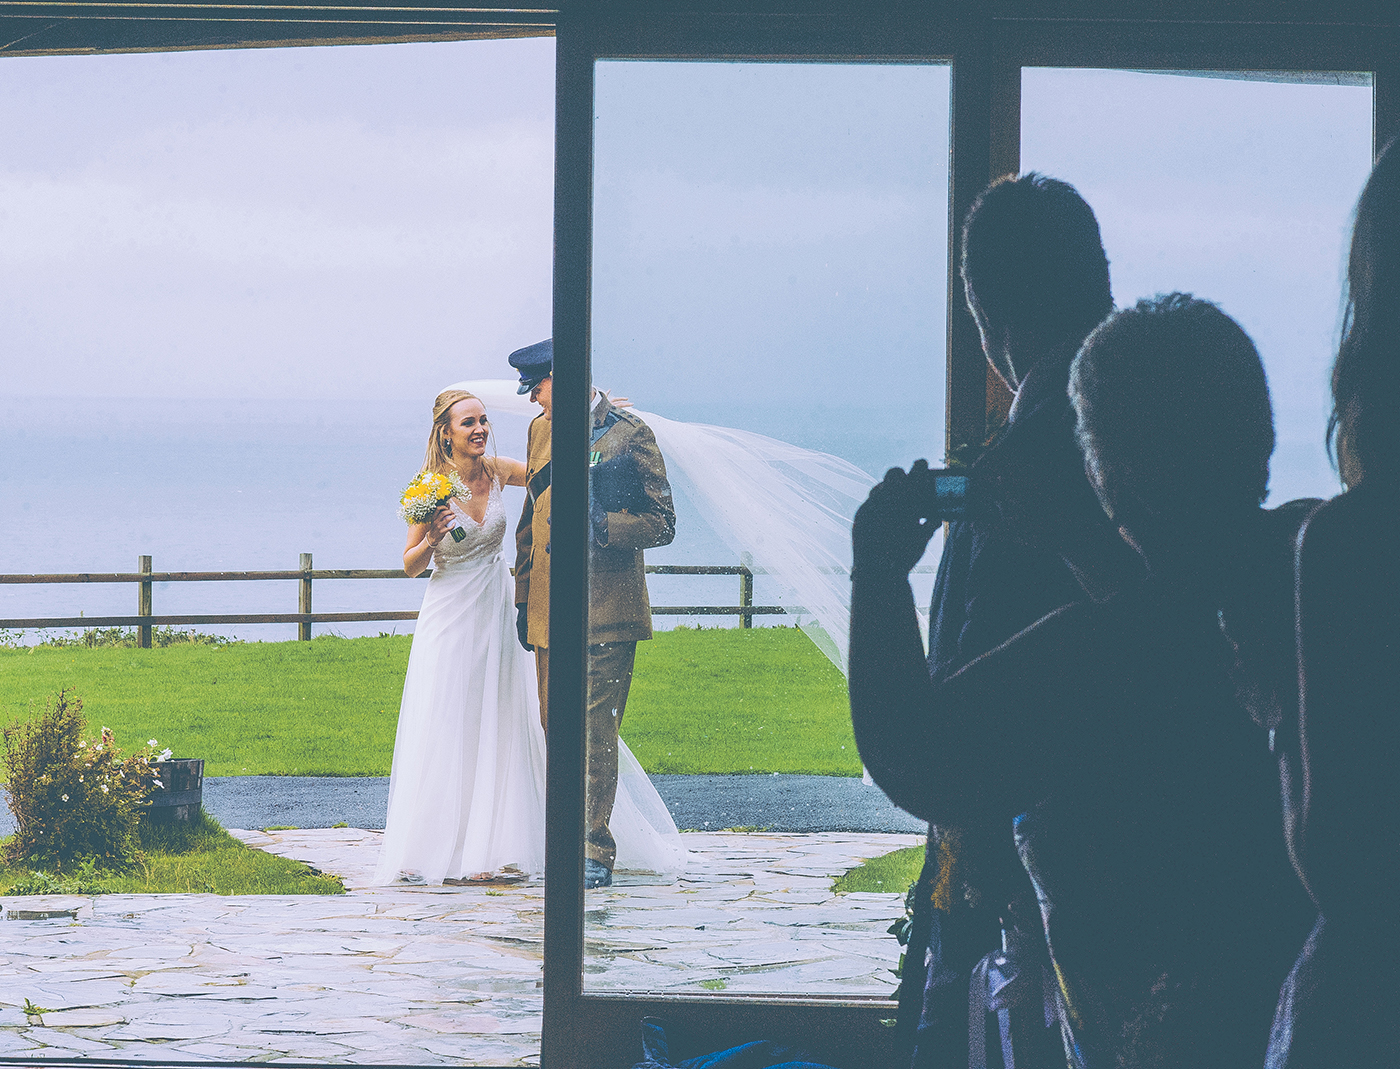 professional-wedding-photographers-Ocean-Kave-GRW-Photography